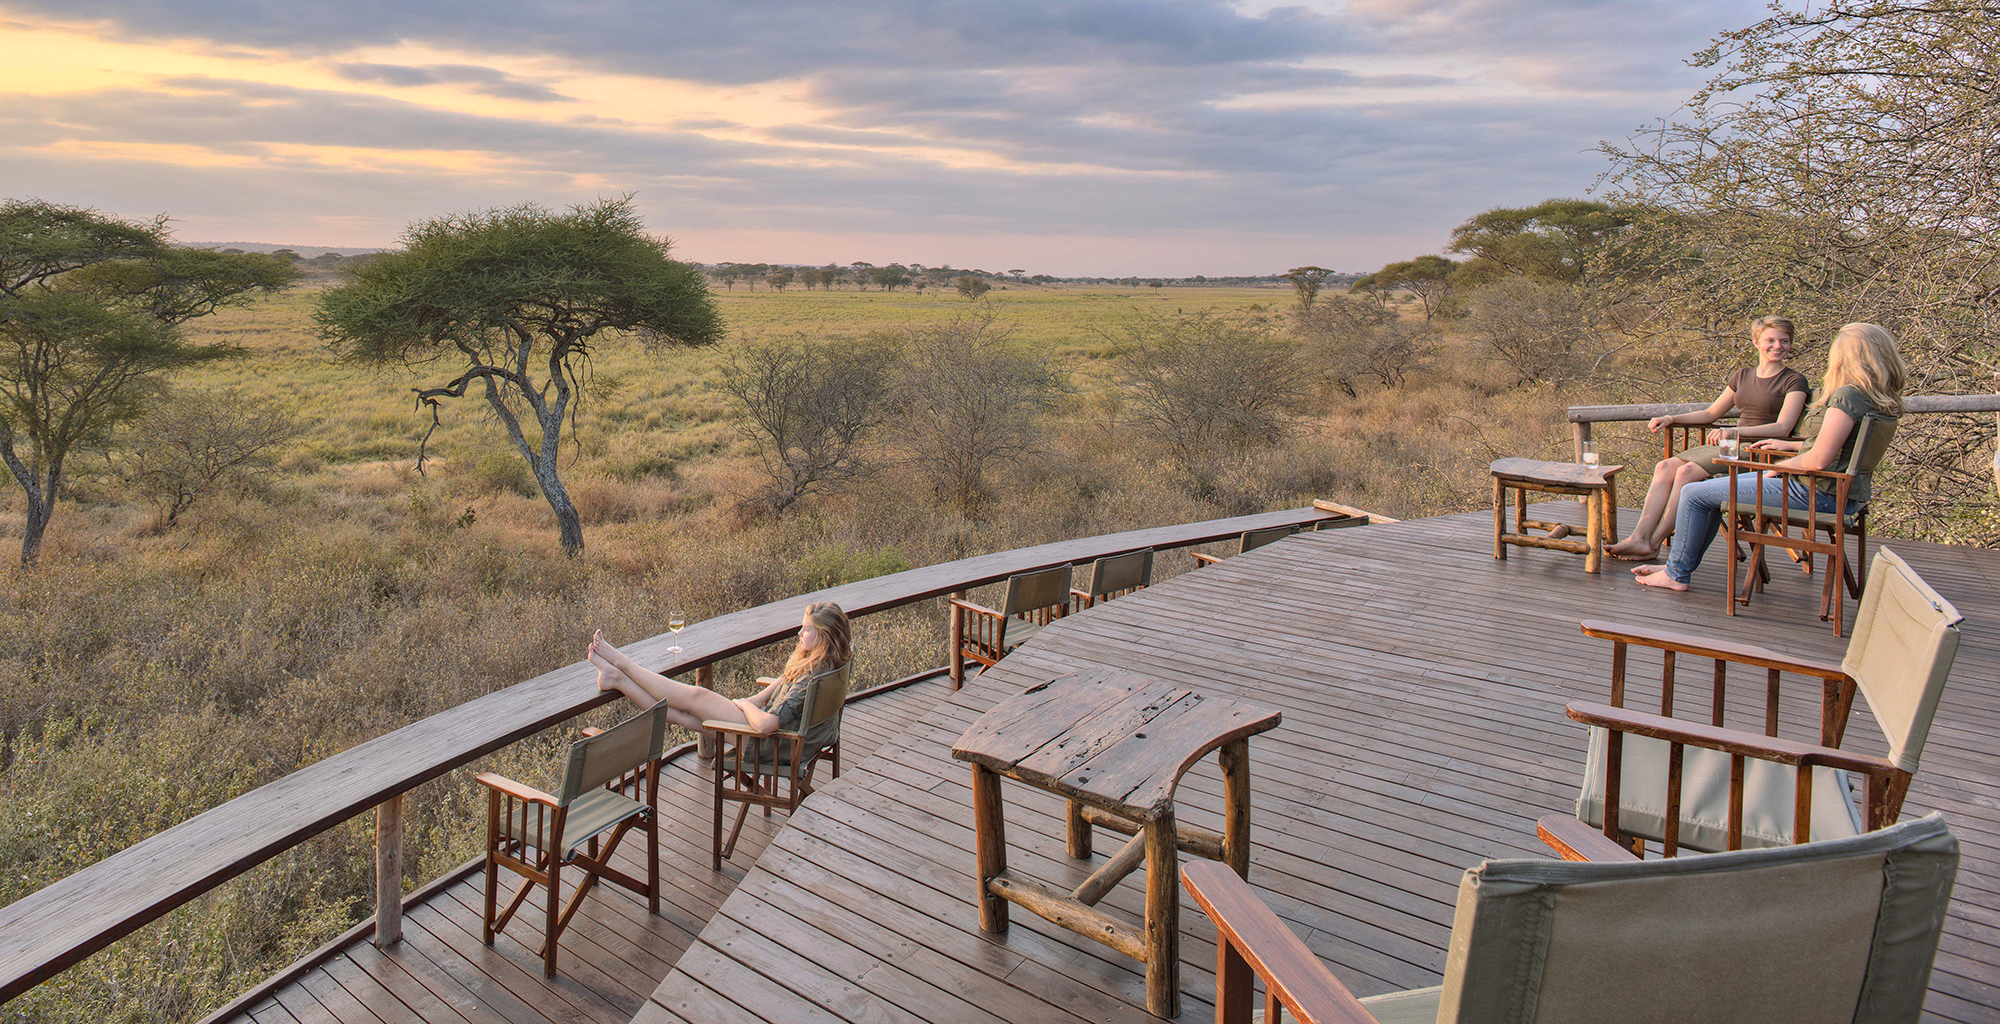 Tanzania-Olivers-Tented-Camp-Deck